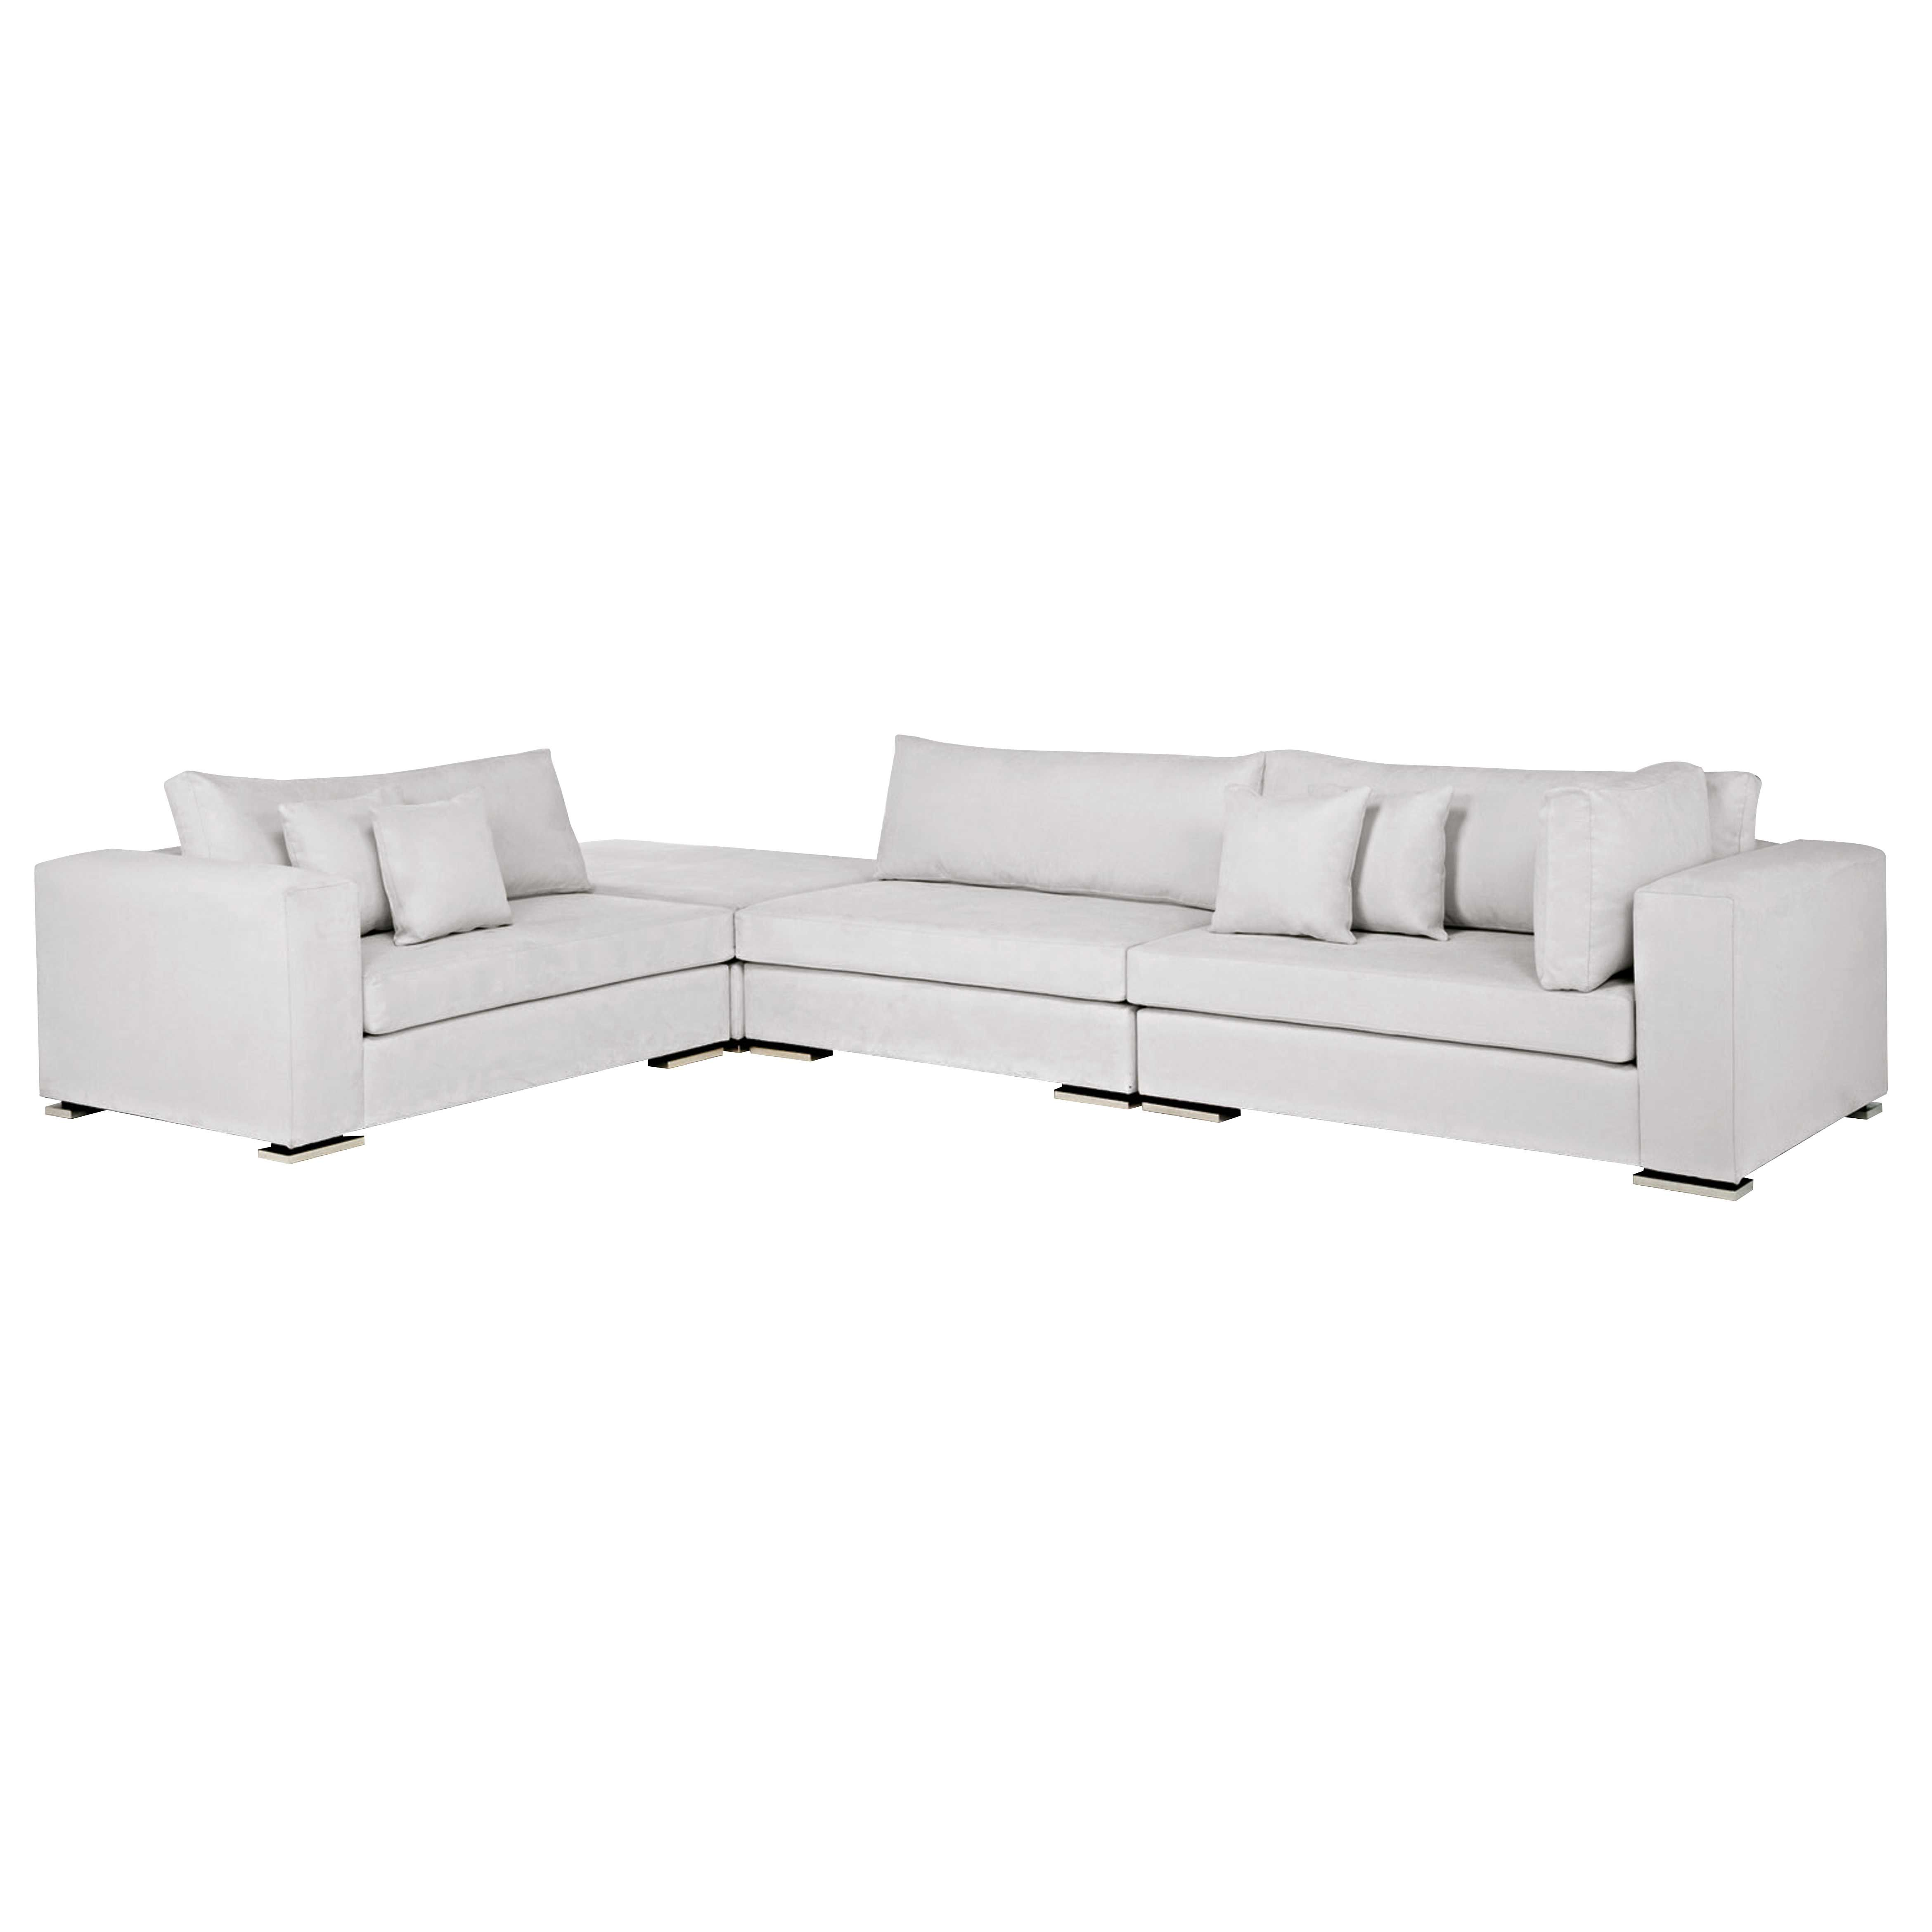 King Living King Furniture Beautiful Sofas Lounge Couch